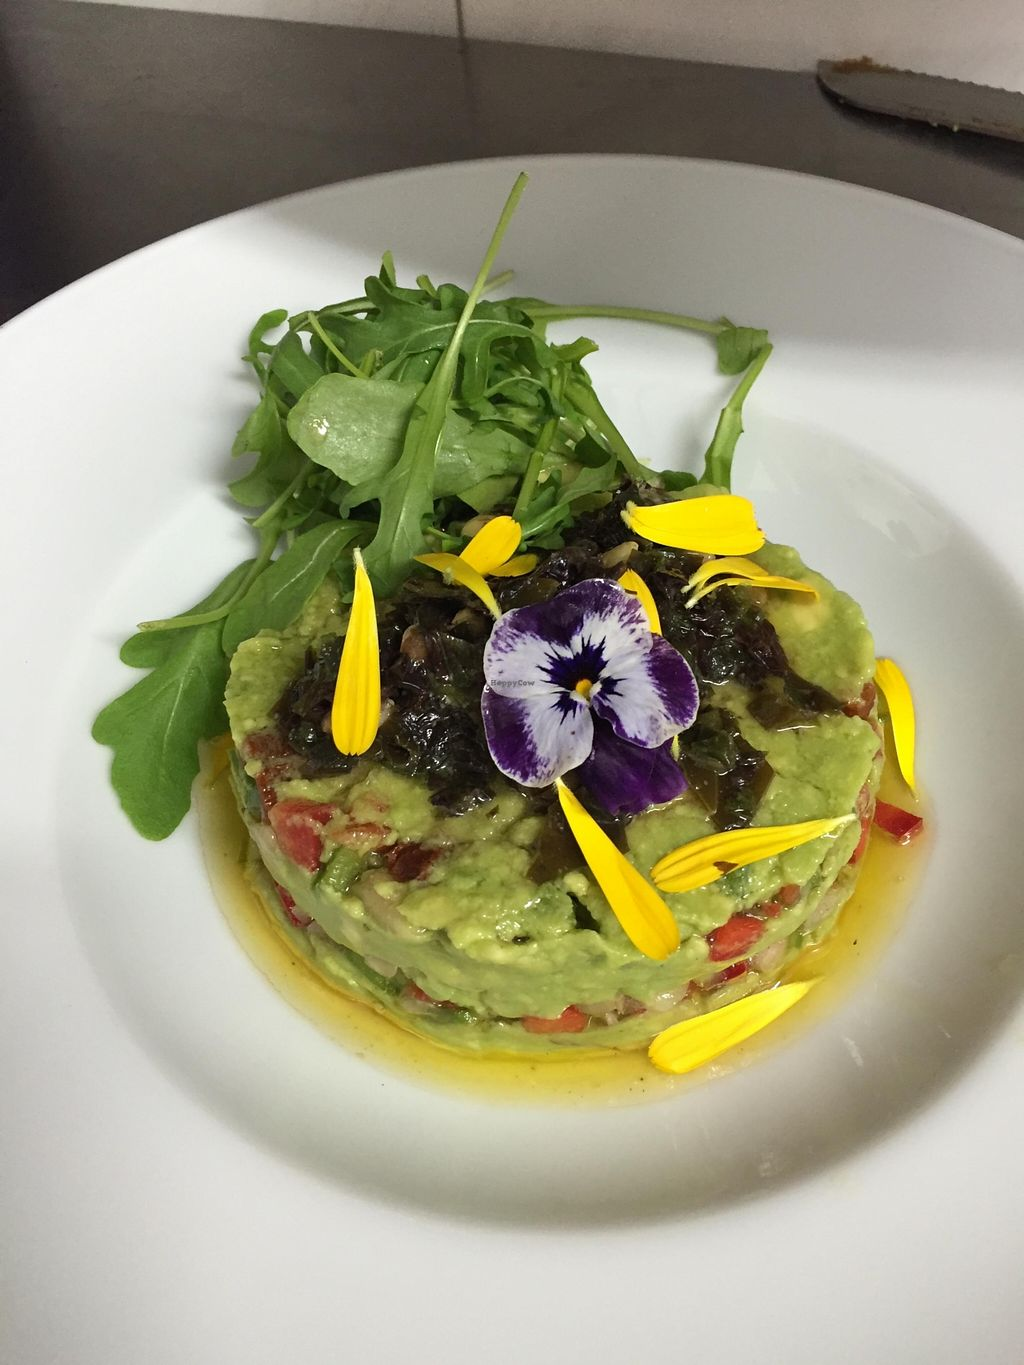 """Photo of 269 Gastro Vegan  by <a href=""""/members/profile/269gastrovegan"""">269gastrovegan</a> <br/> May 8, 2016  - <a href='/contact/abuse/image/73324/148022'>Report</a>"""